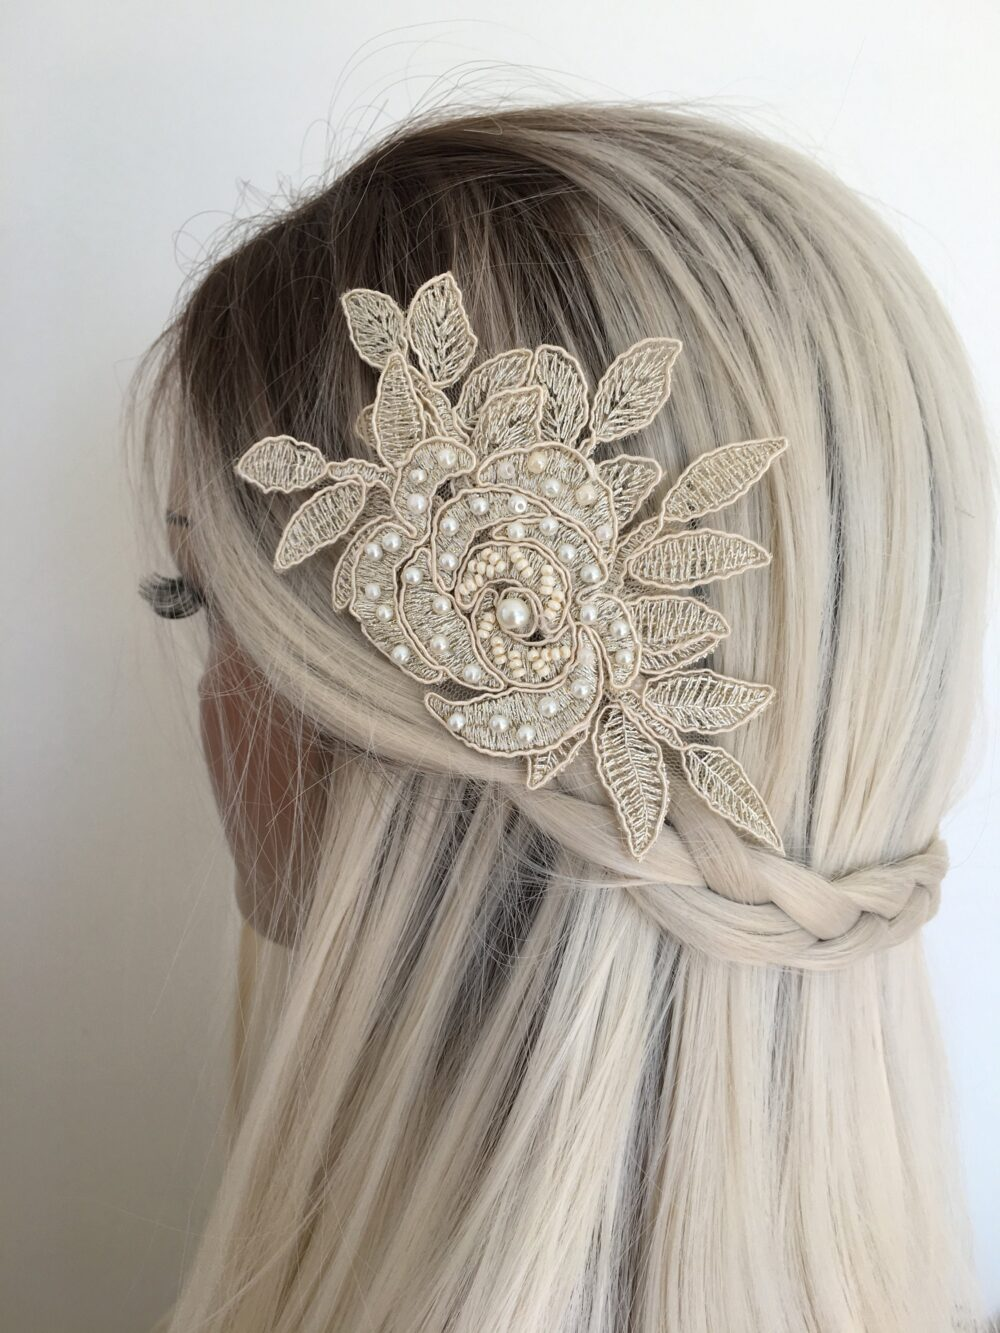 Bridal Hair Comb, Hairpiece, Lace Headpiece, Floral Comb, Accessories, Hair Comb Champagne Lace